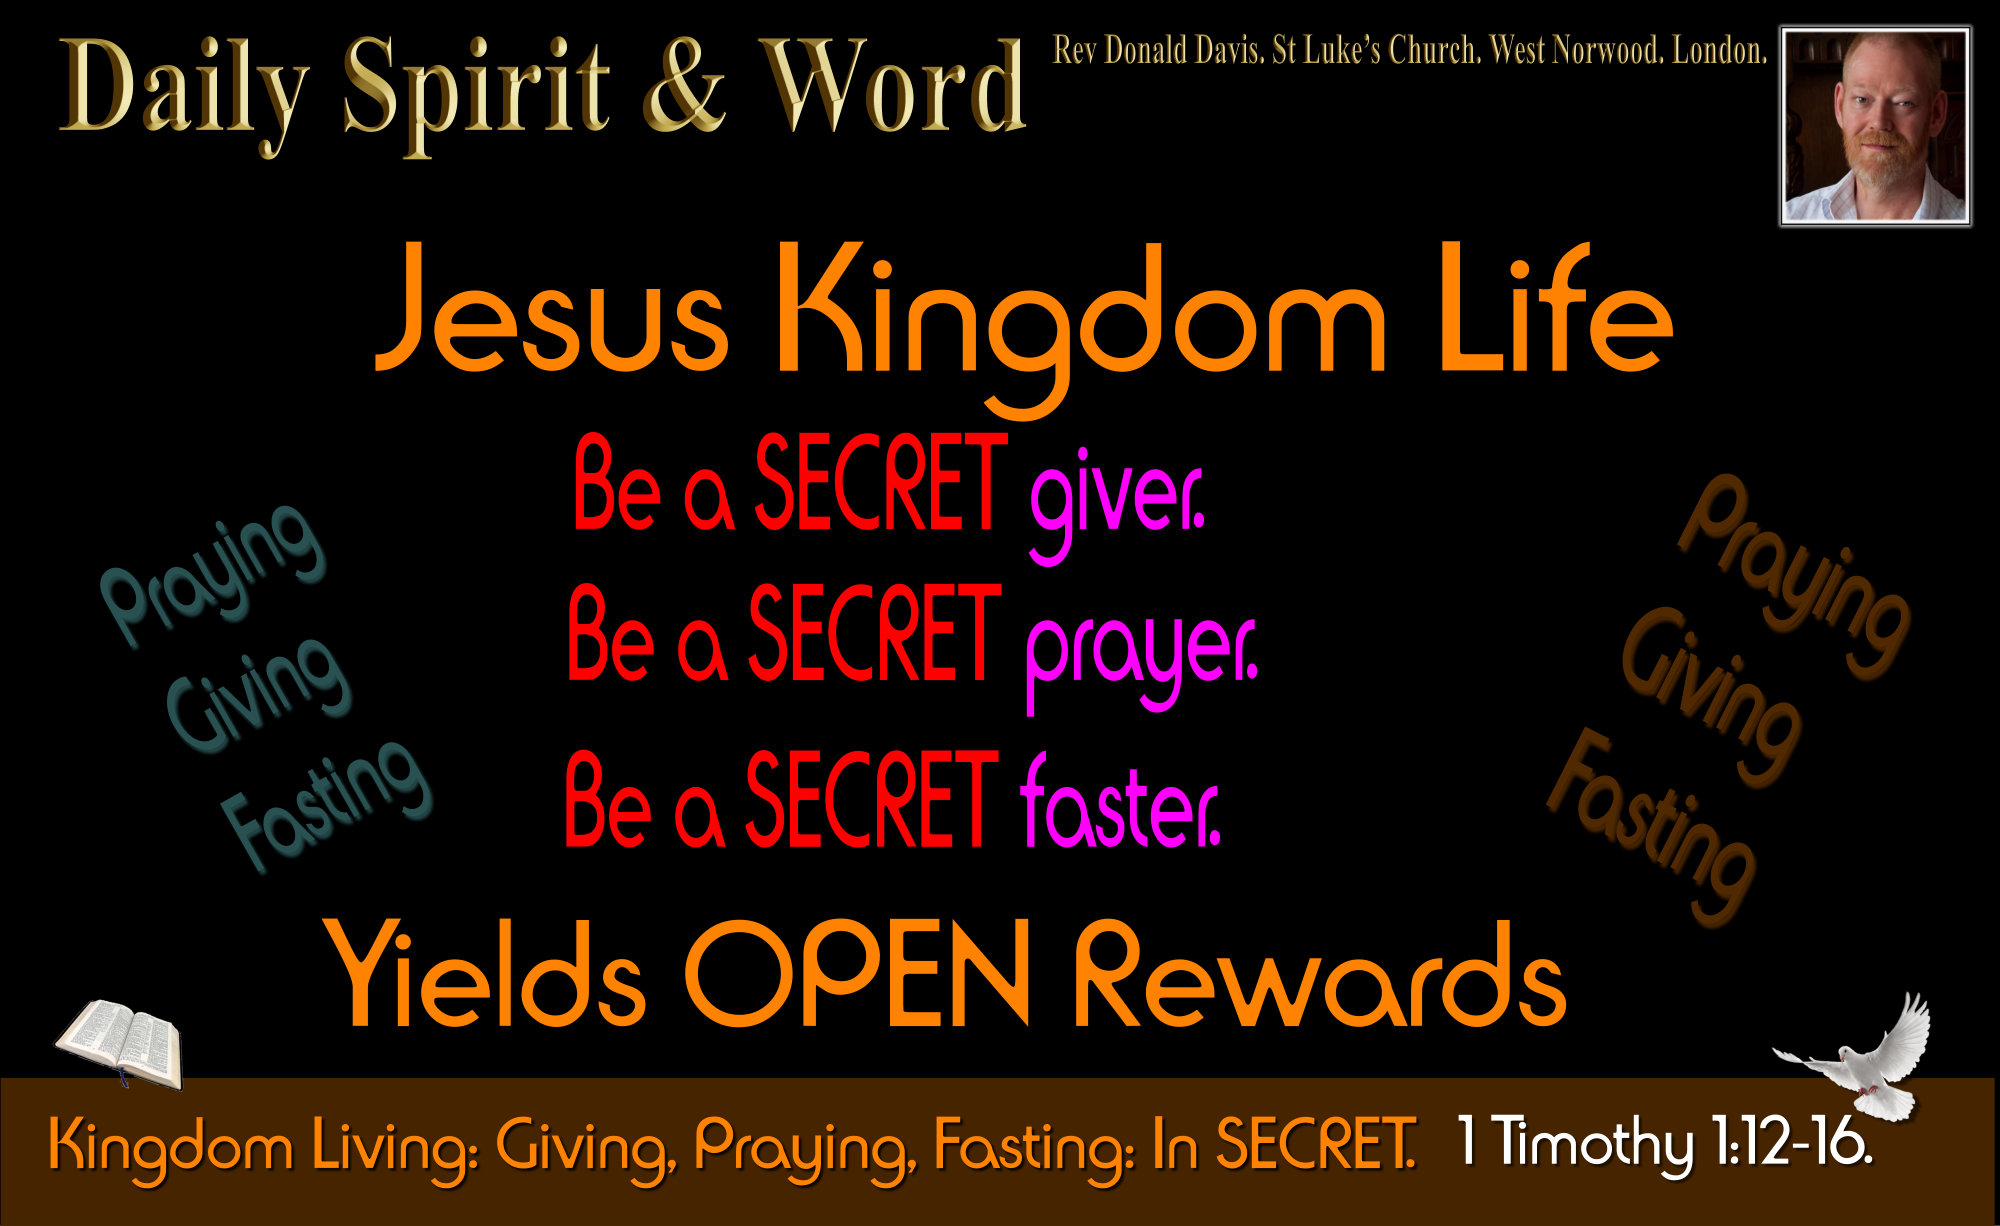 Through Faith In Jesus You Will Become His Secret Change Agents This World